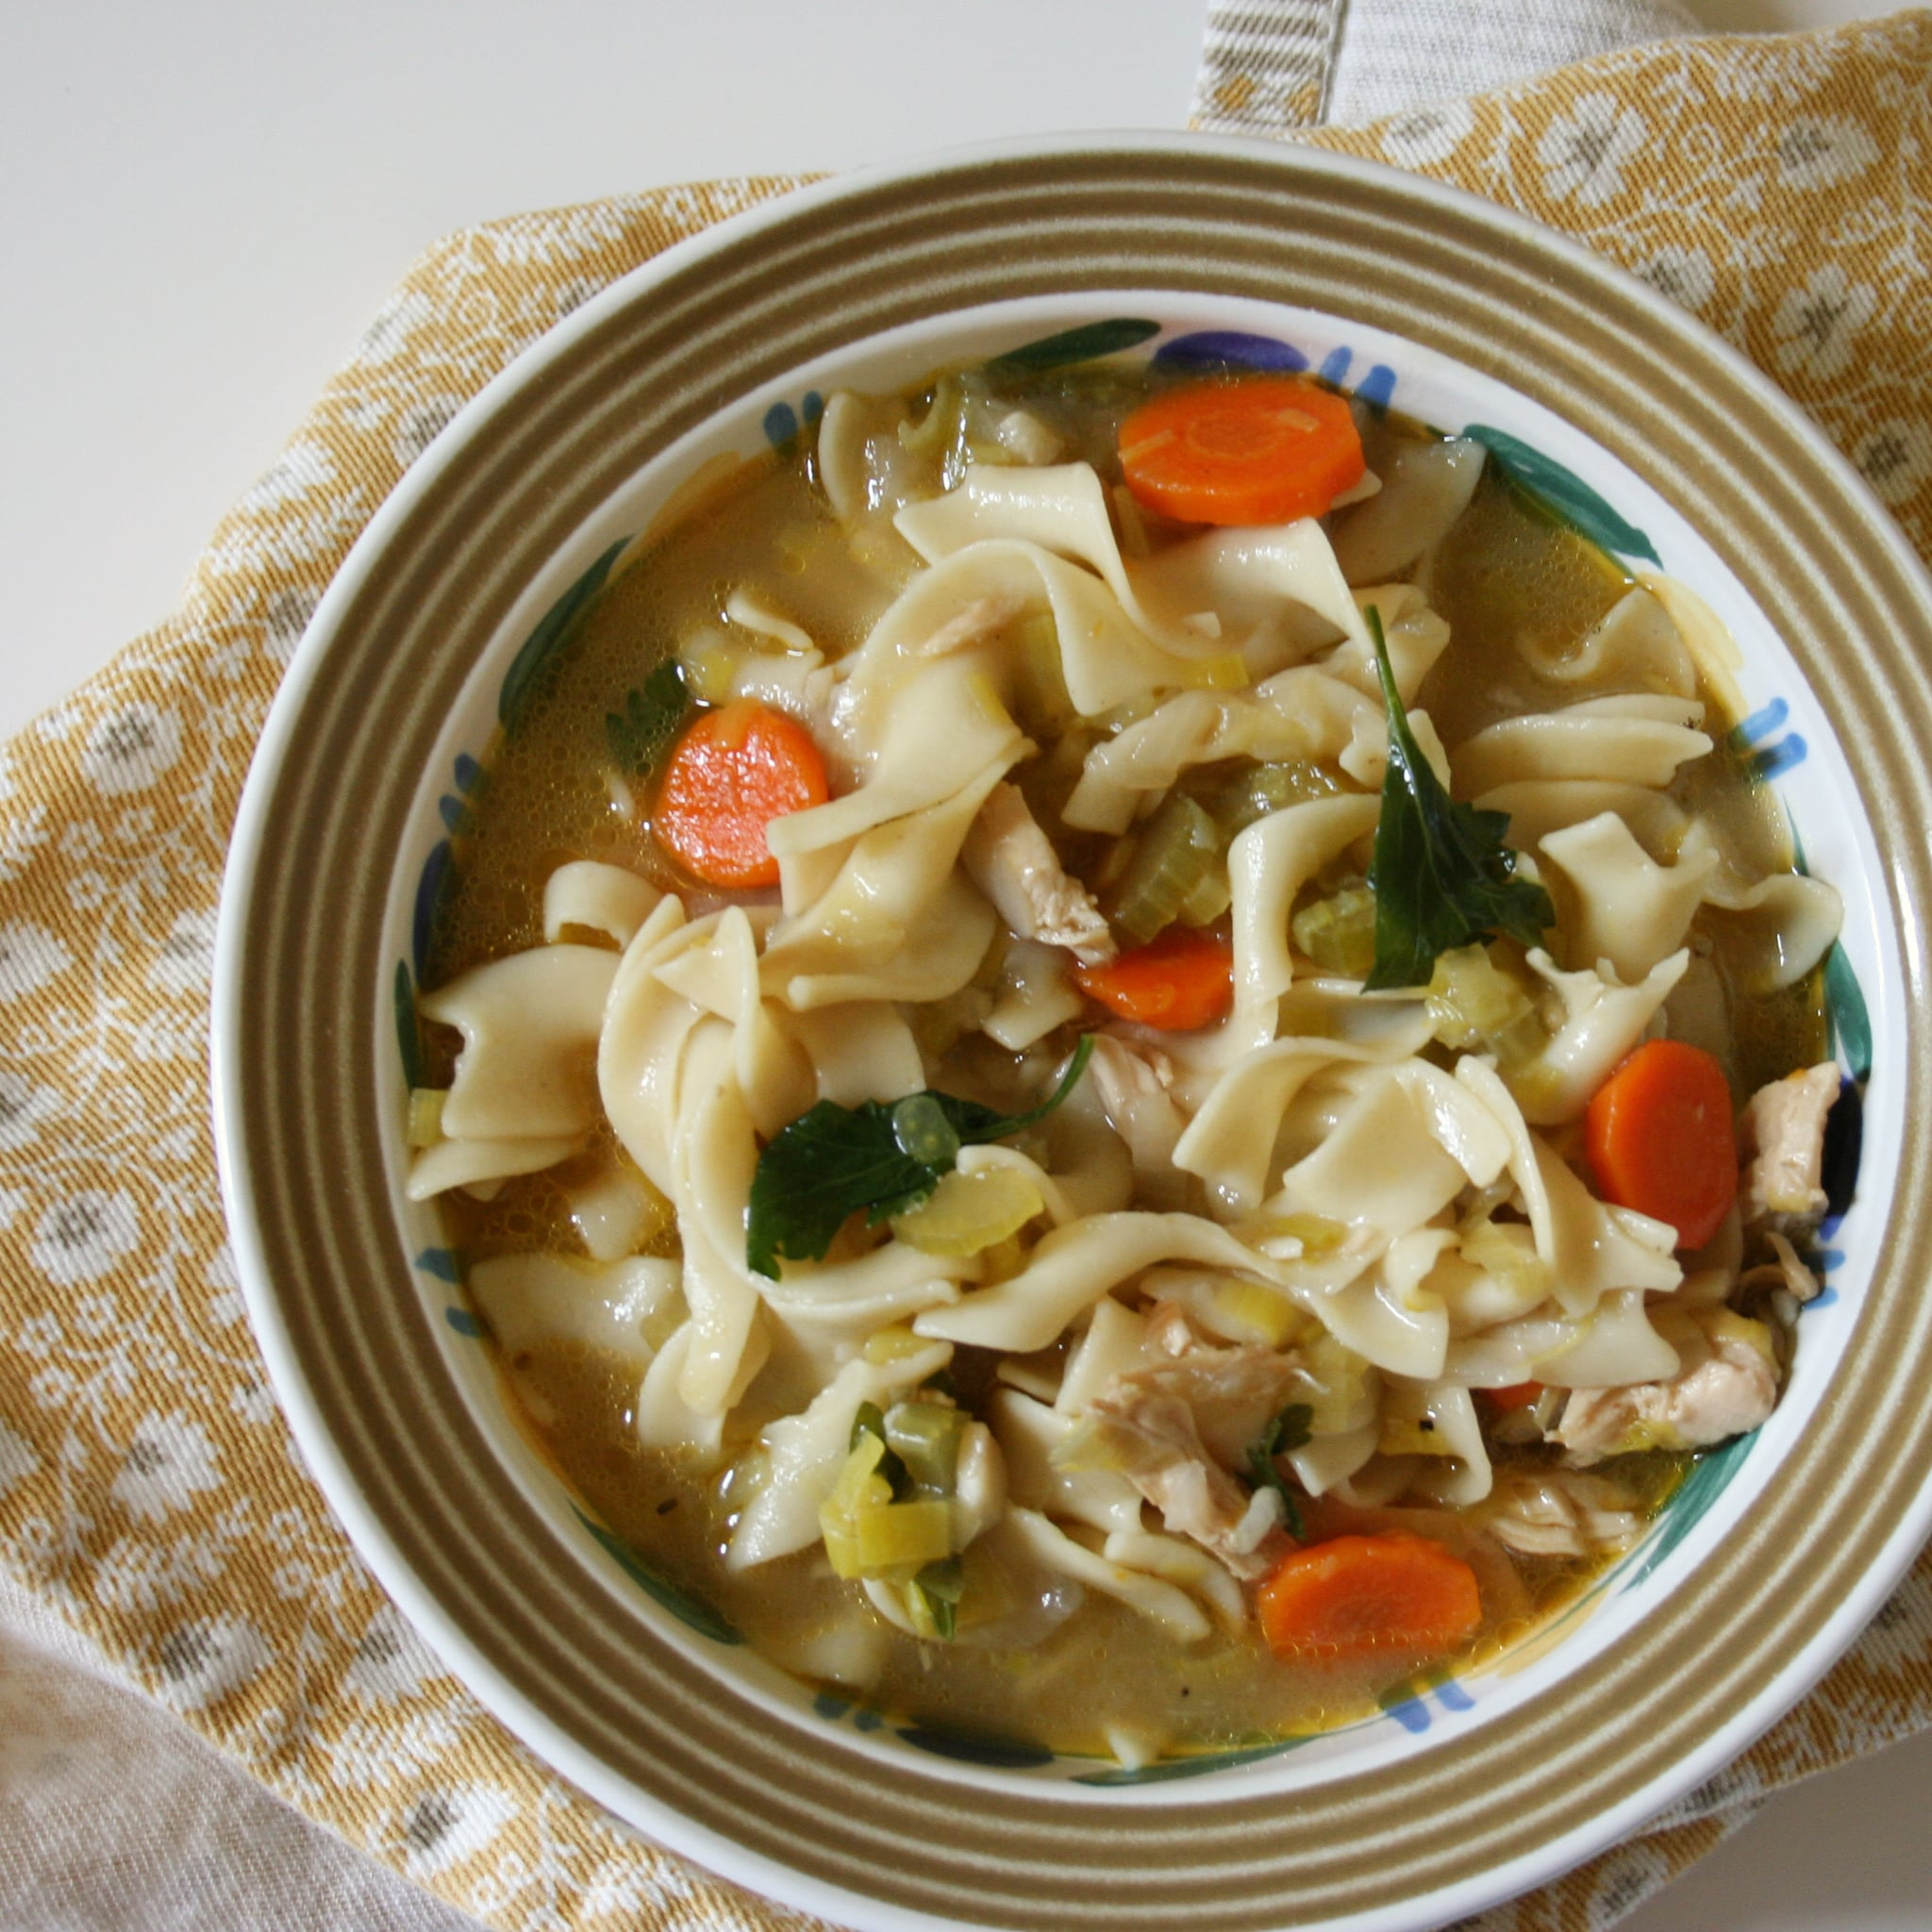 Food network chicken noodle soup recipes popsugar food food network chicken noodle soup recipes forumfinder Images